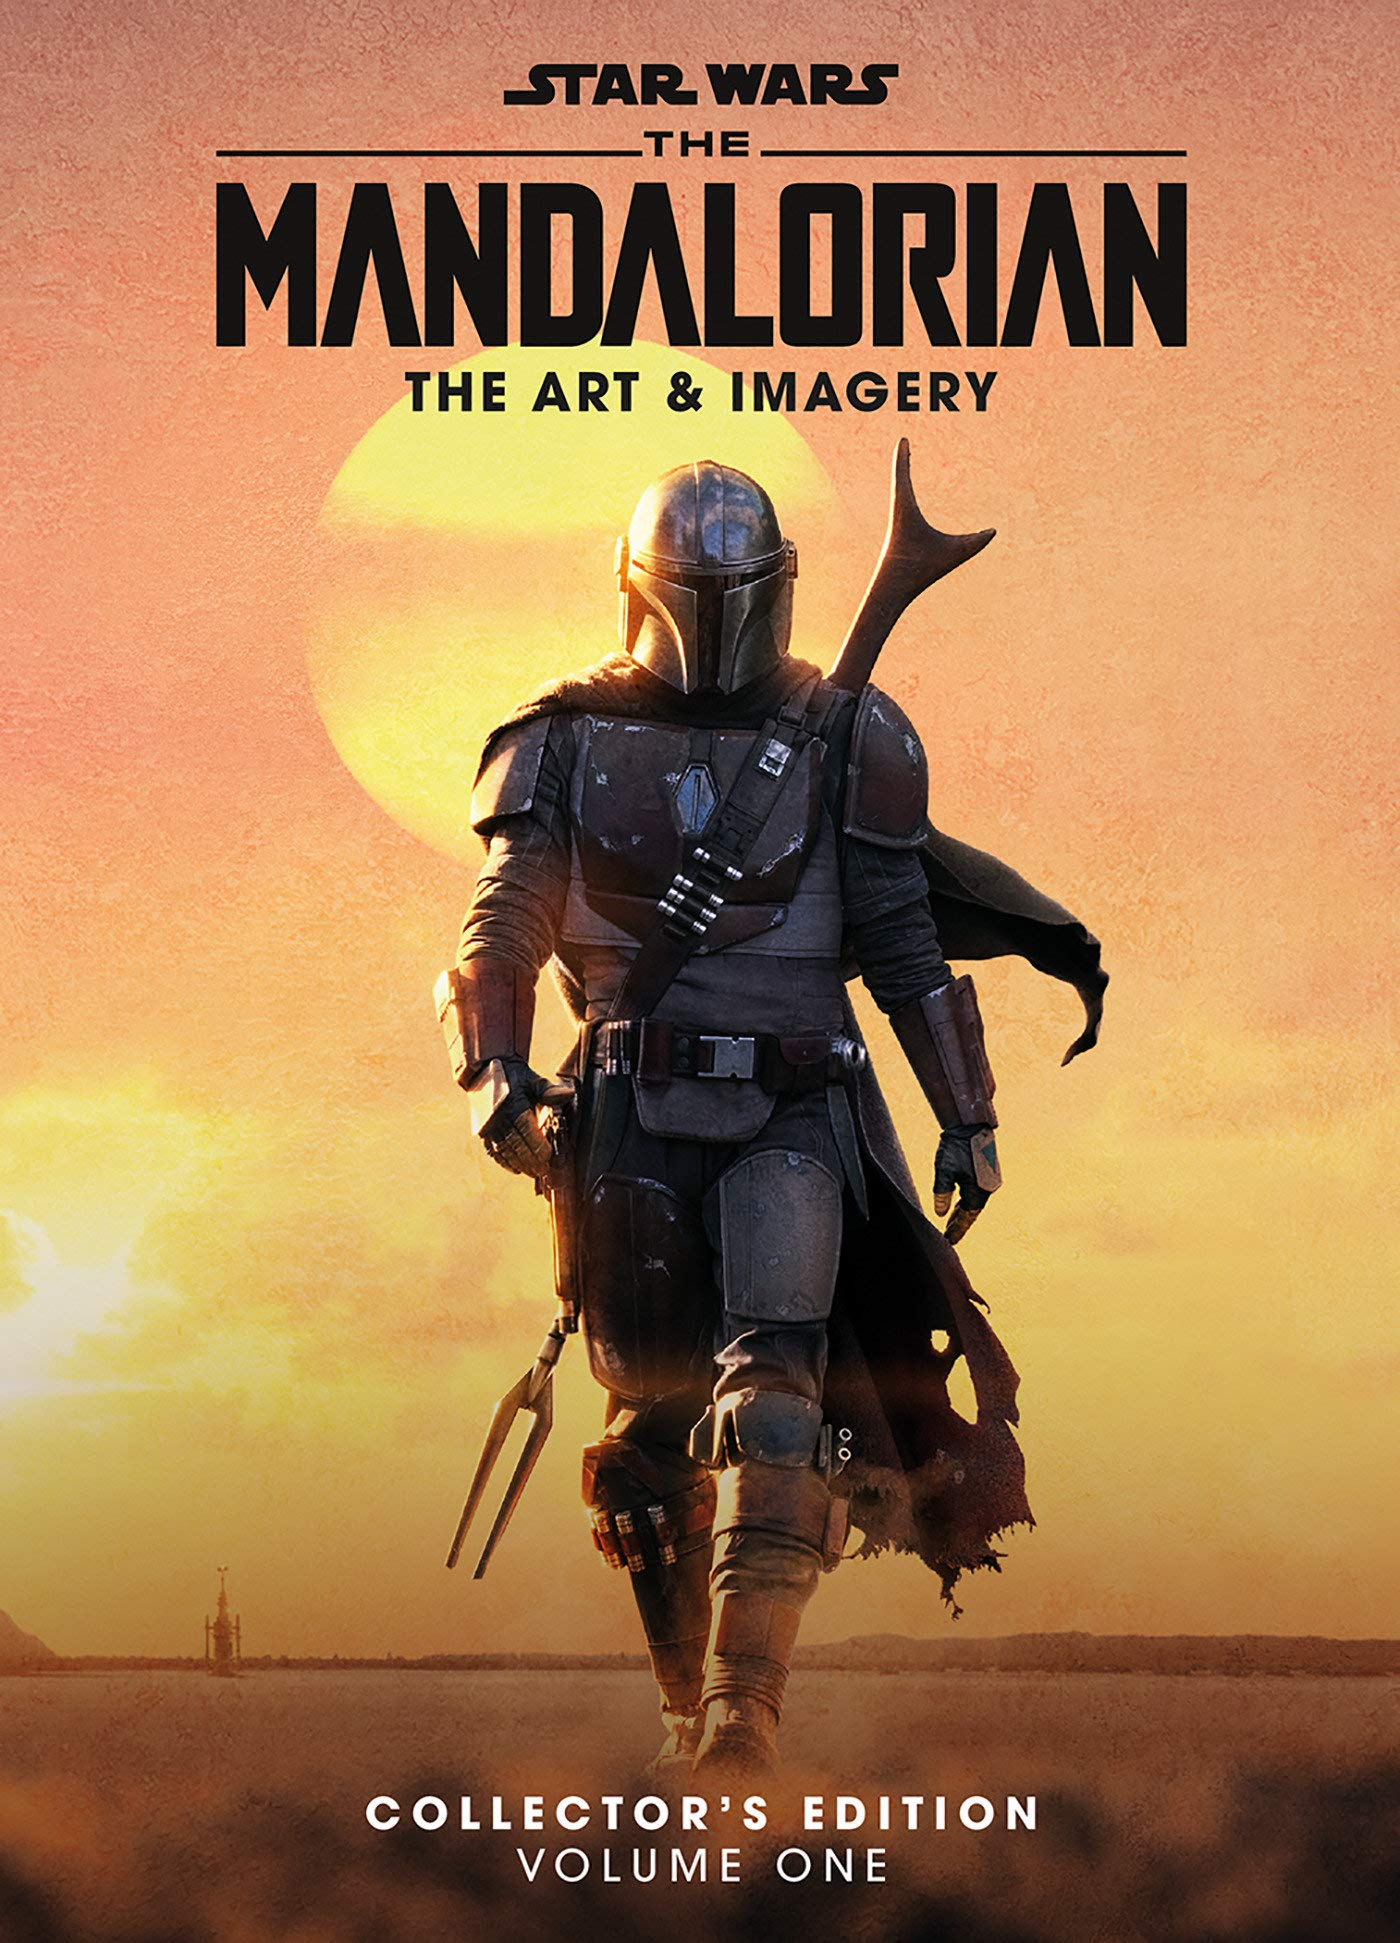 Amazon Com Star Wars The Mandalorian The Art Imagery Collector S Edition Vol 1 9781787734203 Titan Books